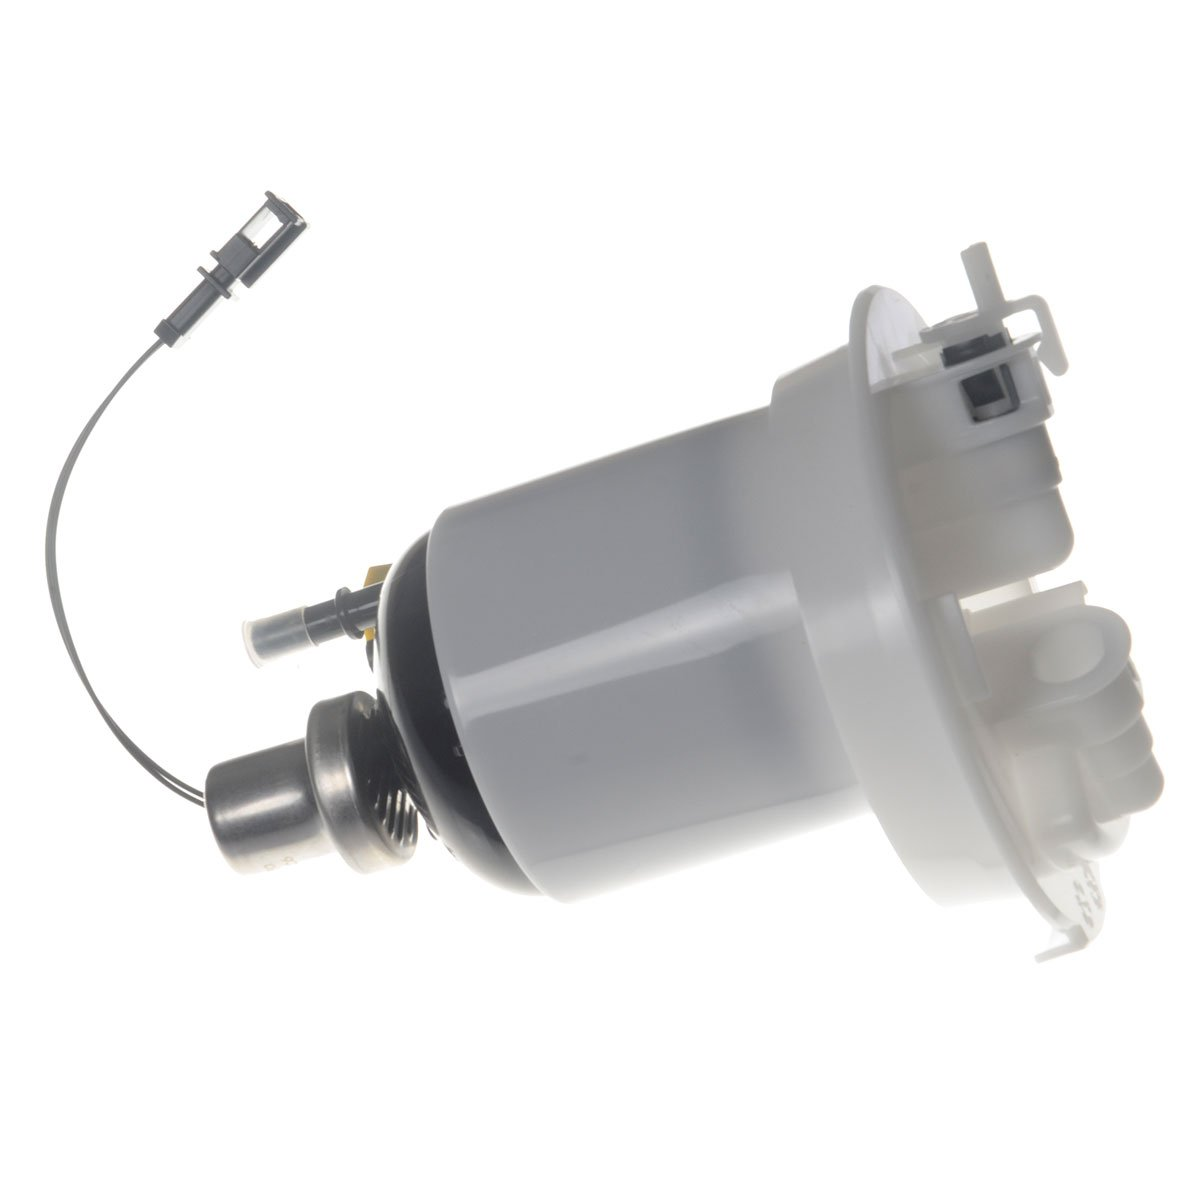 Fuel Tank Filter for Land Rover Range Rover 2006-2009 HSE Model Only